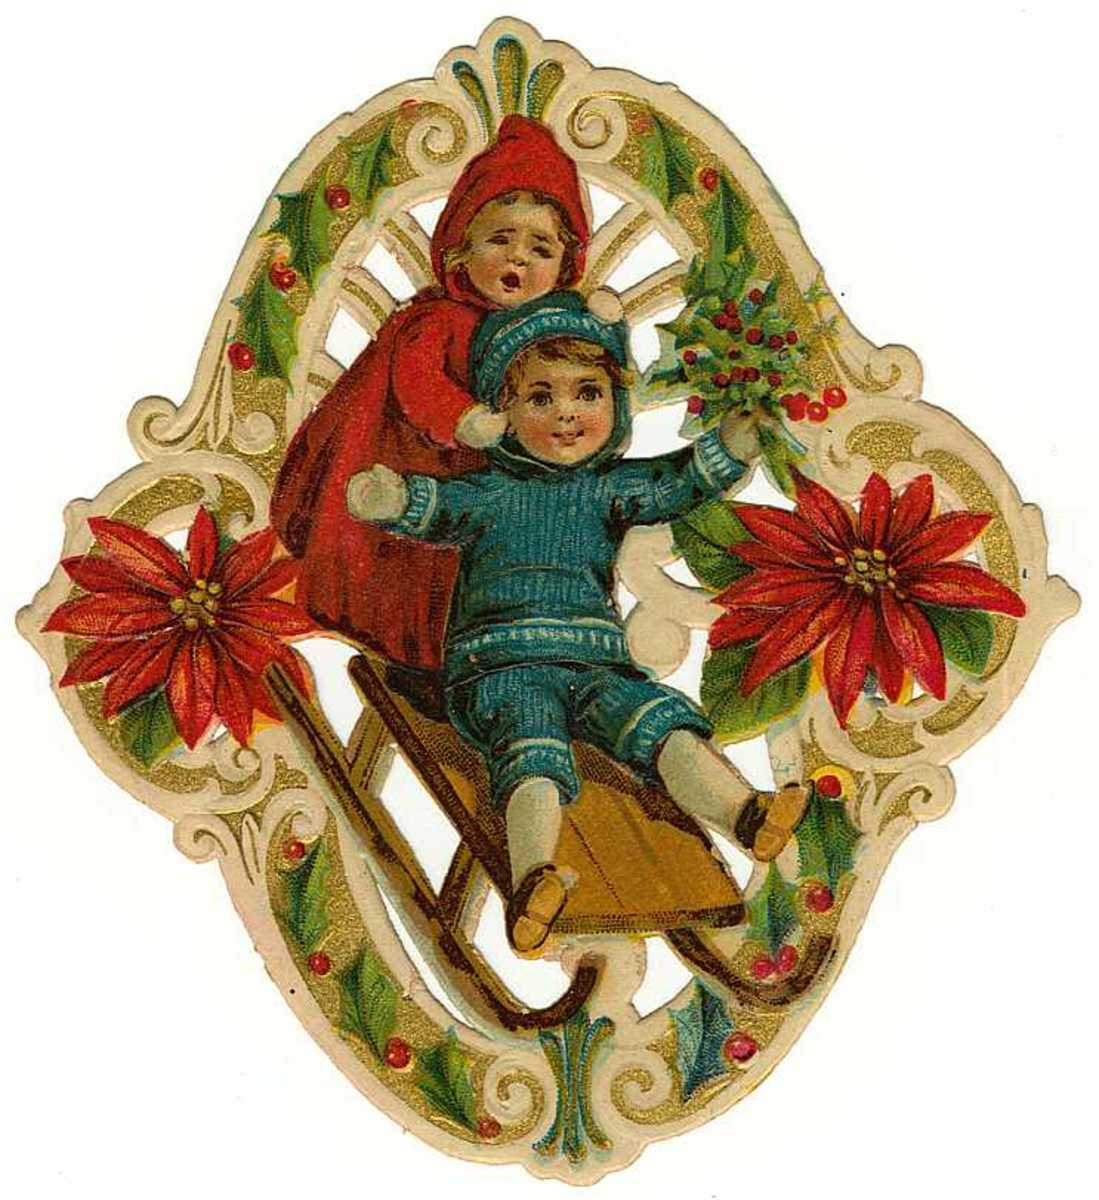 Vintage Christmas images:  Children on a sled